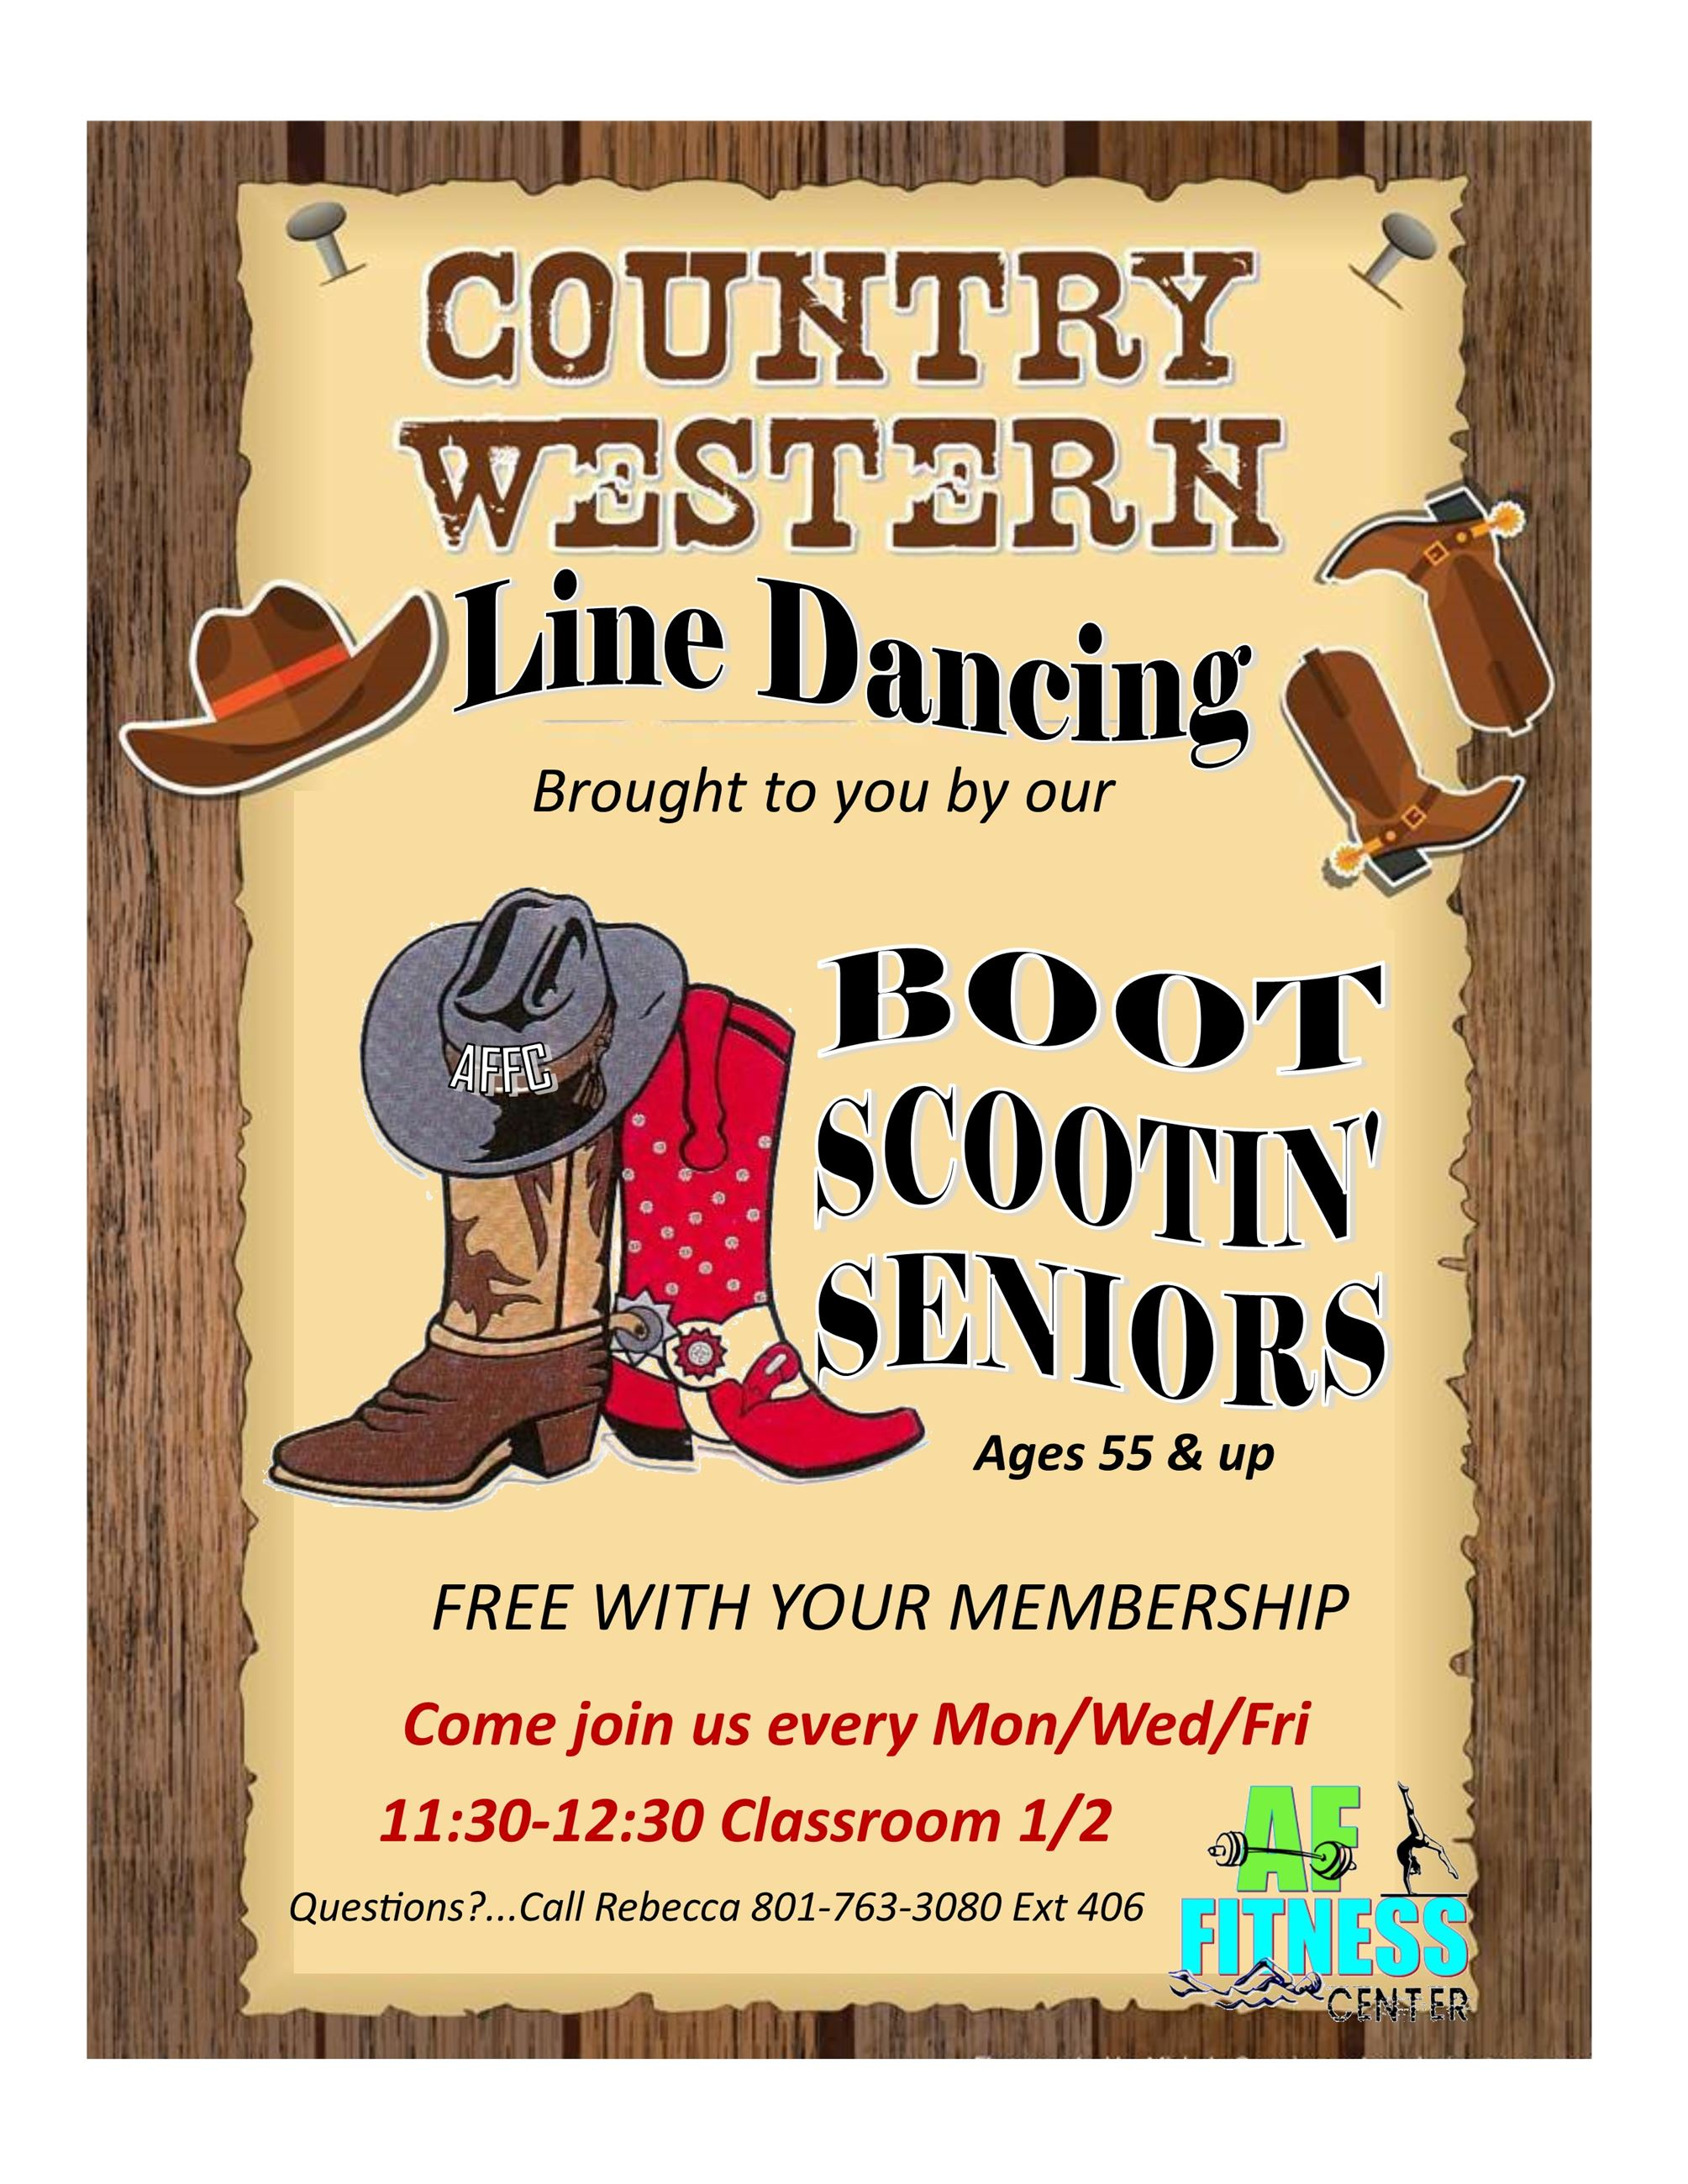 Line dancing flyer 2017.pub